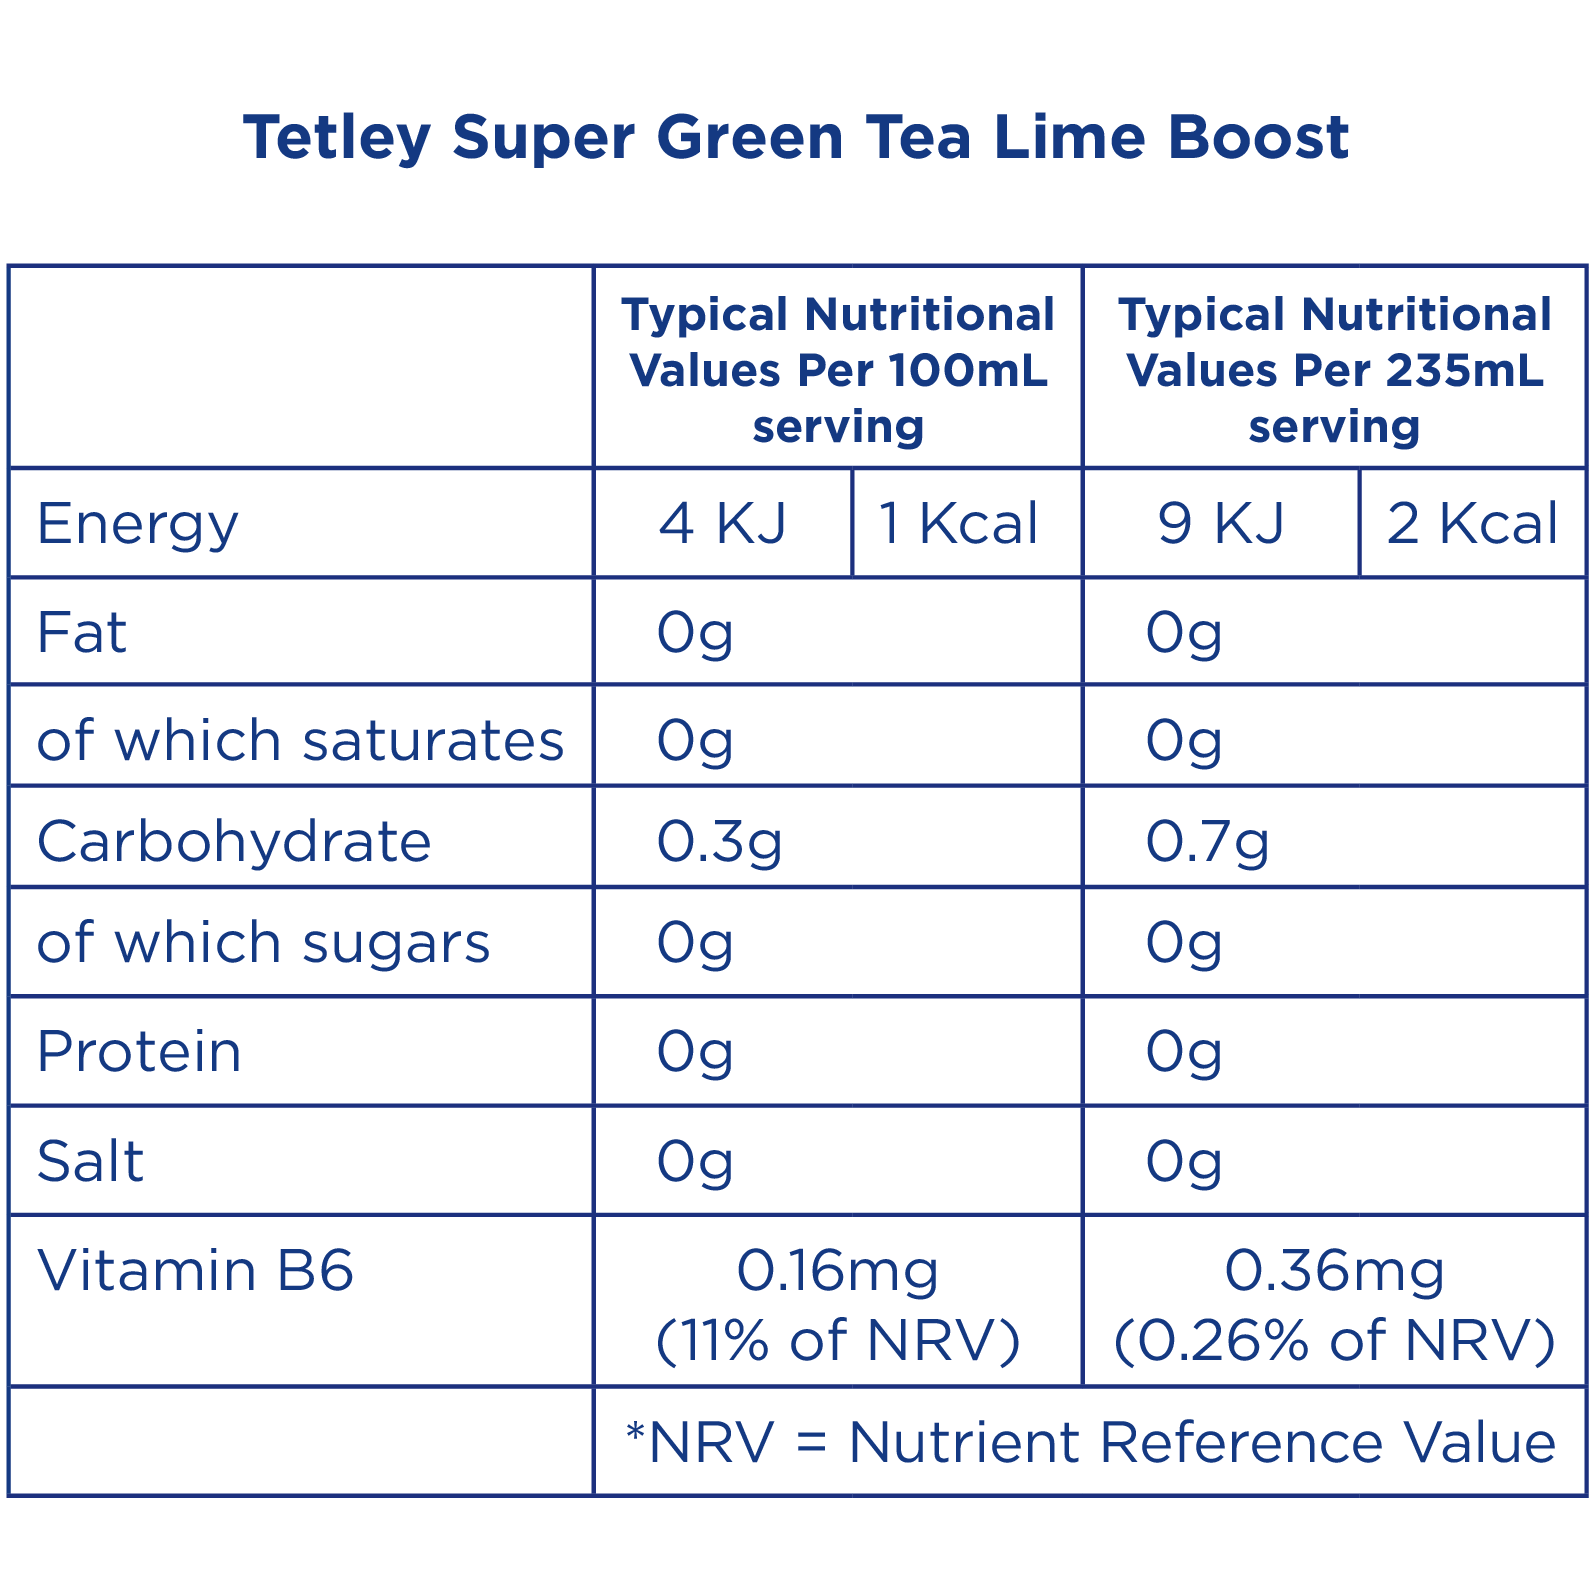 Tetley Super Green Tea Lime Boost